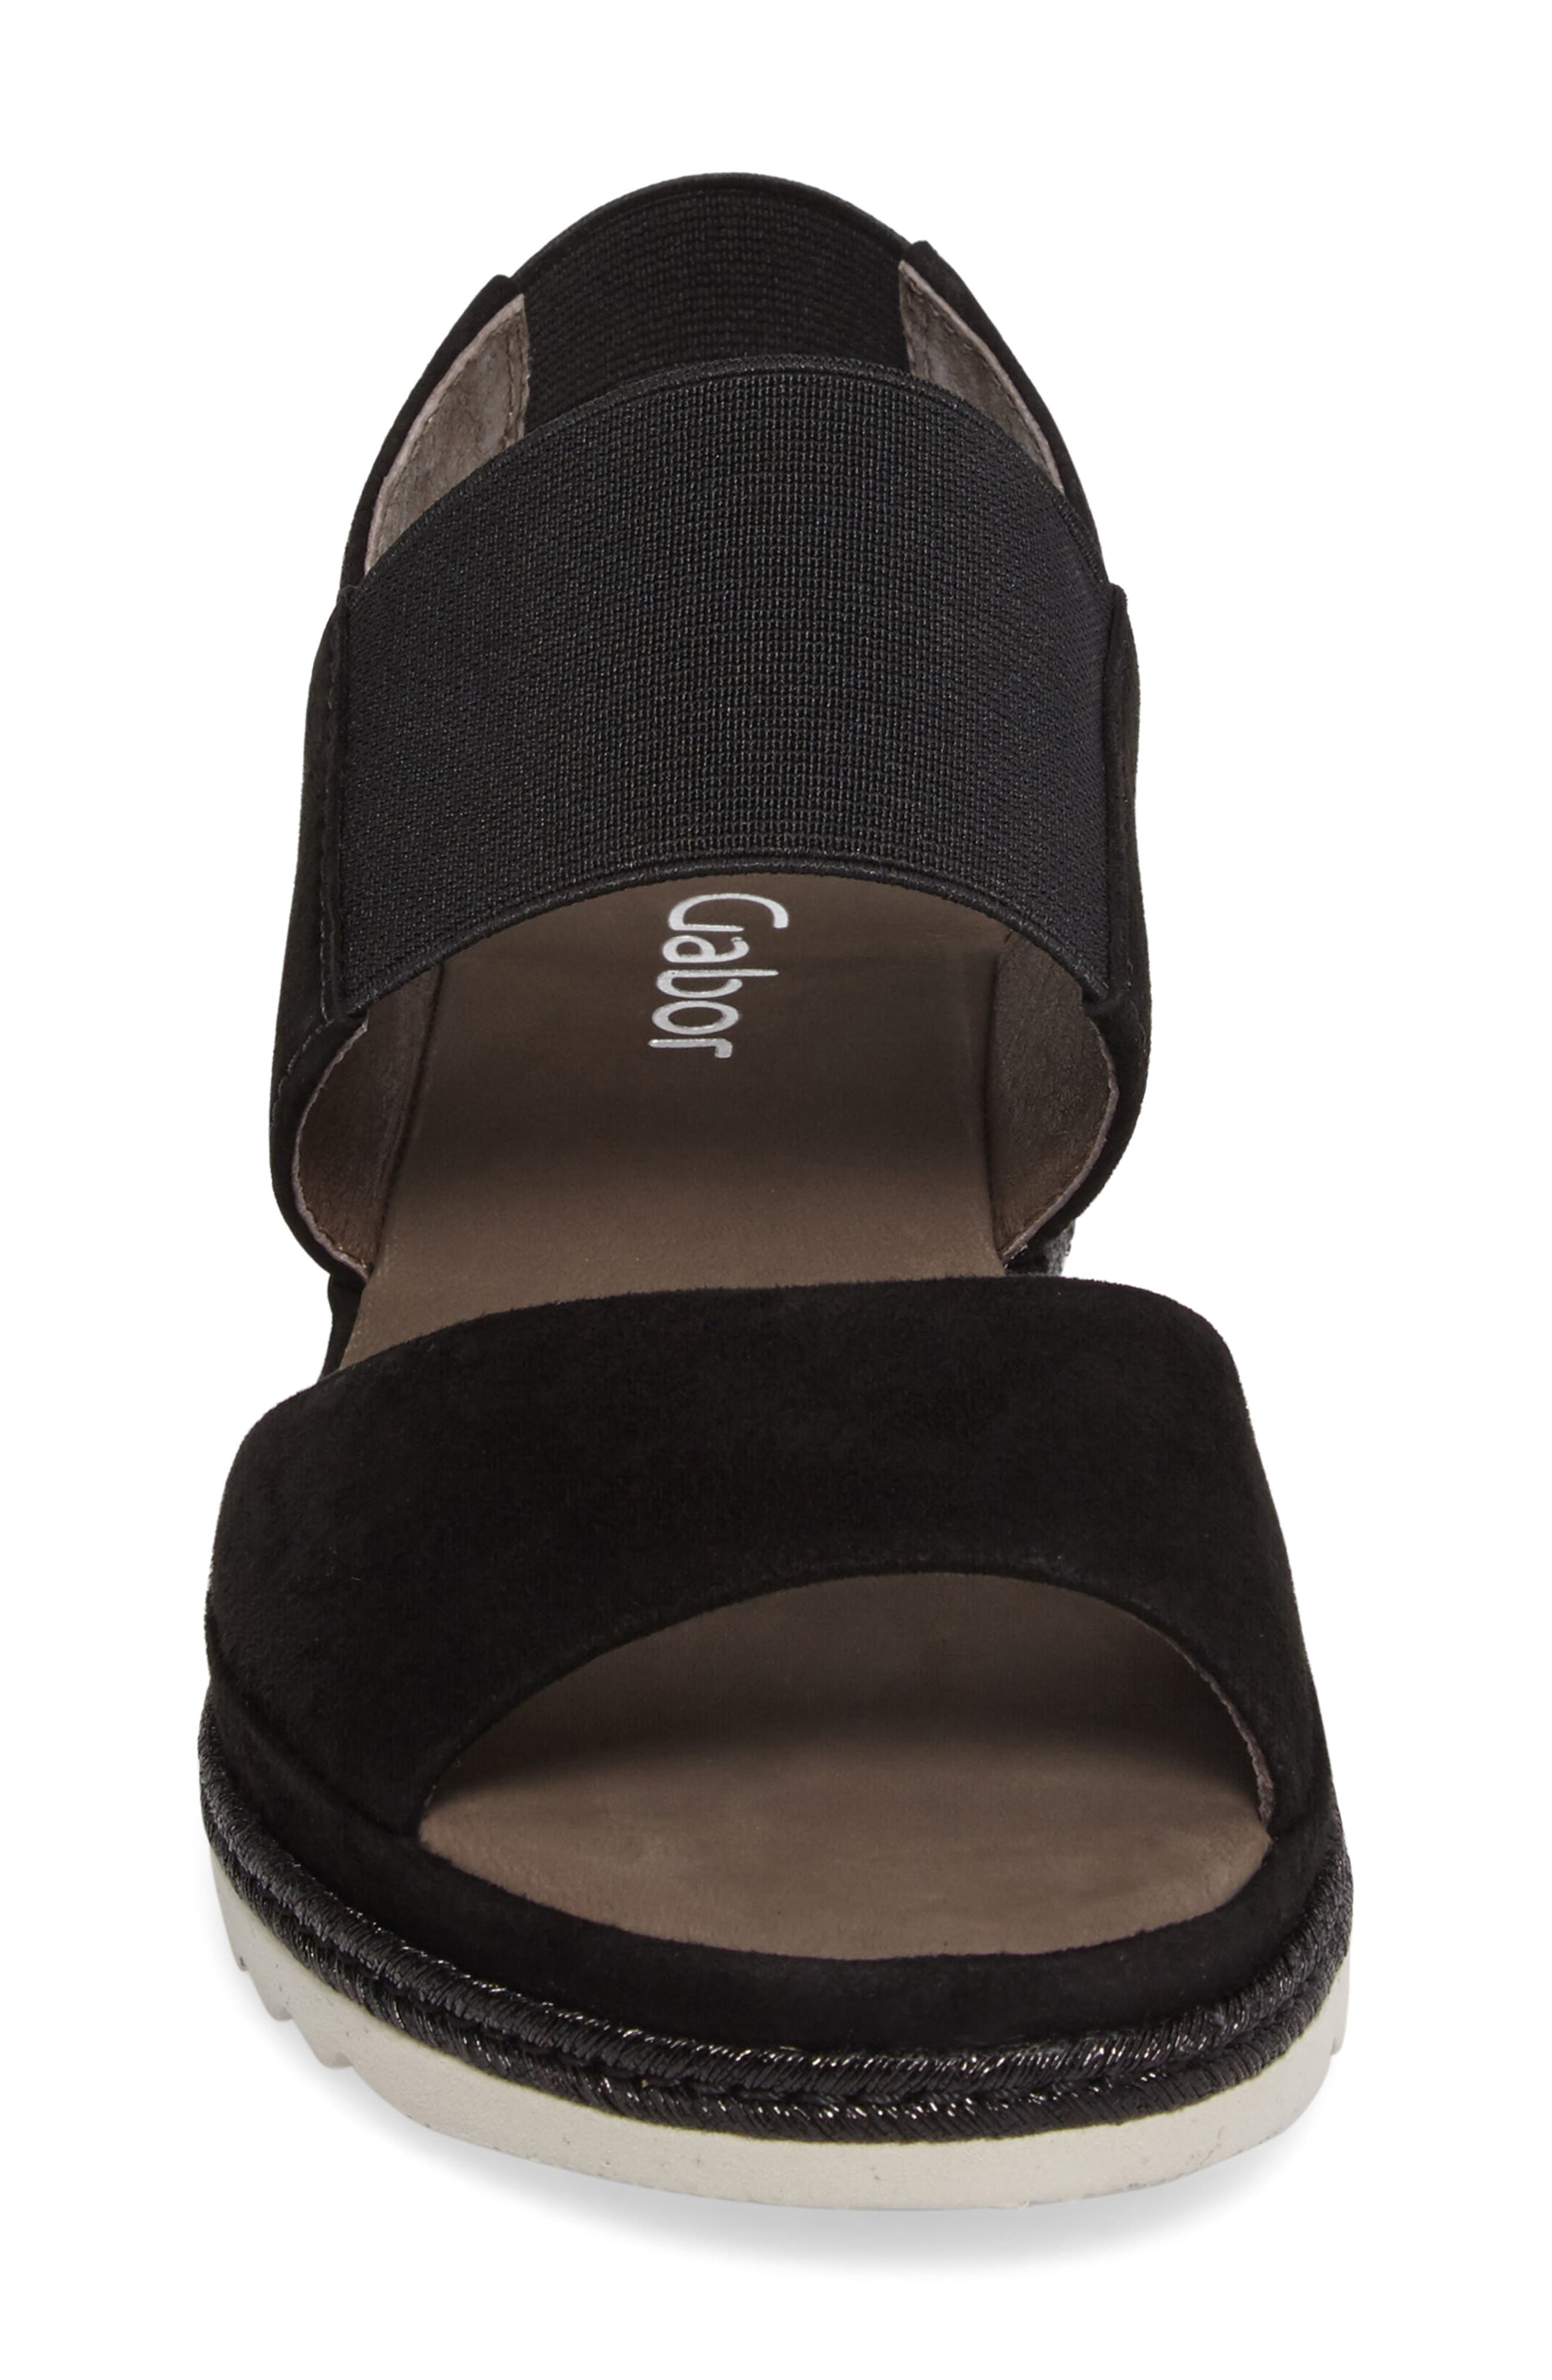 Low Wedge Sandal,                             Alternate thumbnail 4, color,                             001